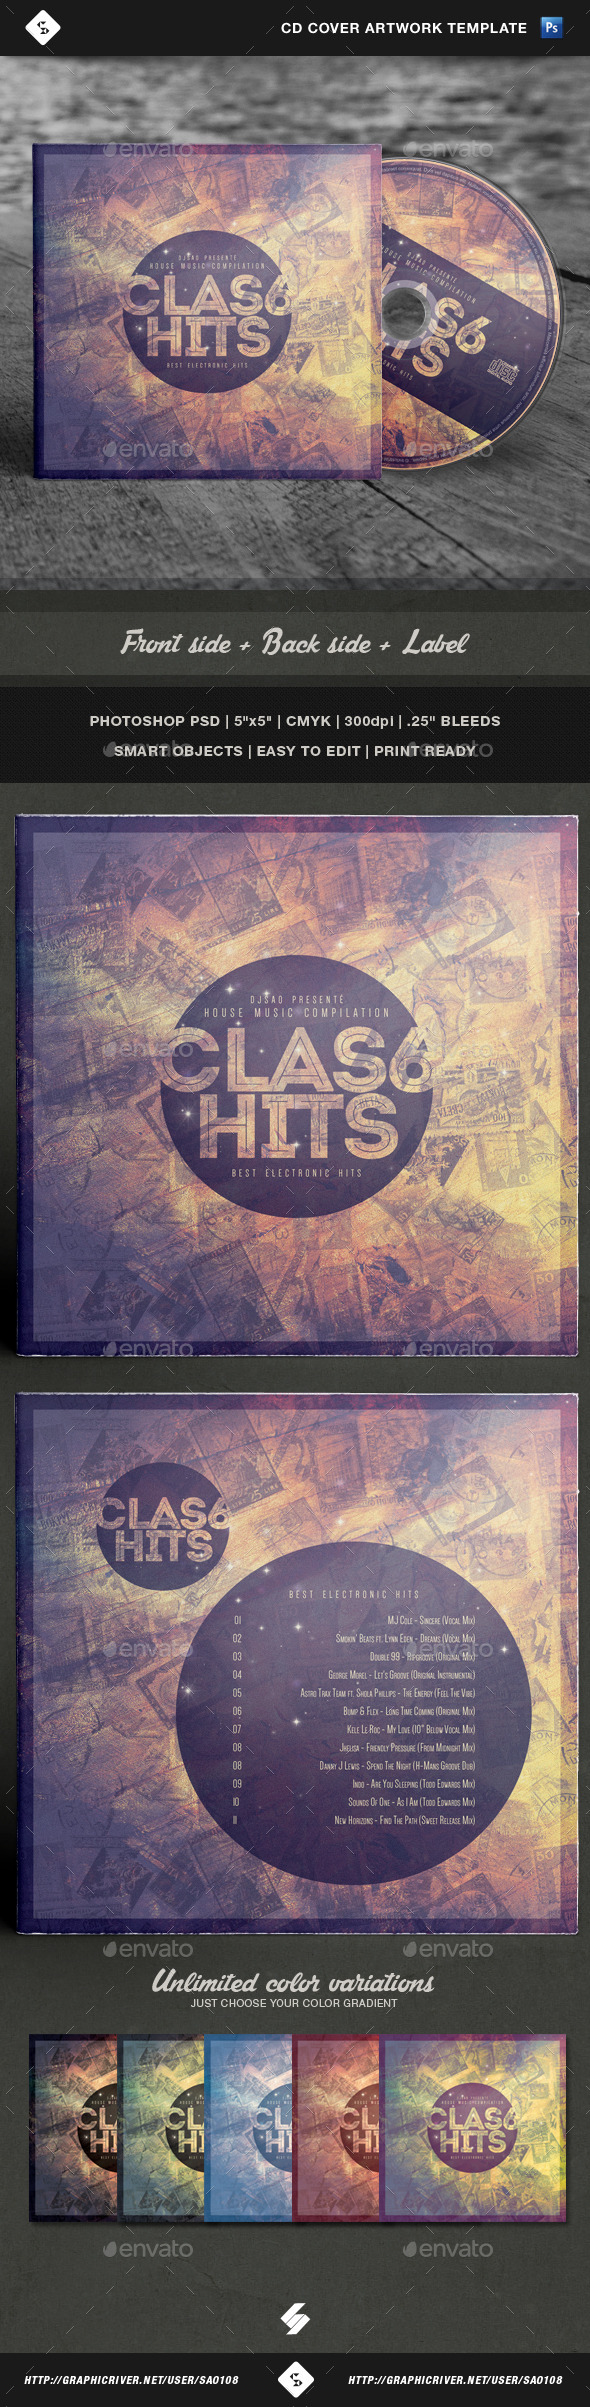 GraphicRiver Classix Hits CD Cover Artwork Template 10859029